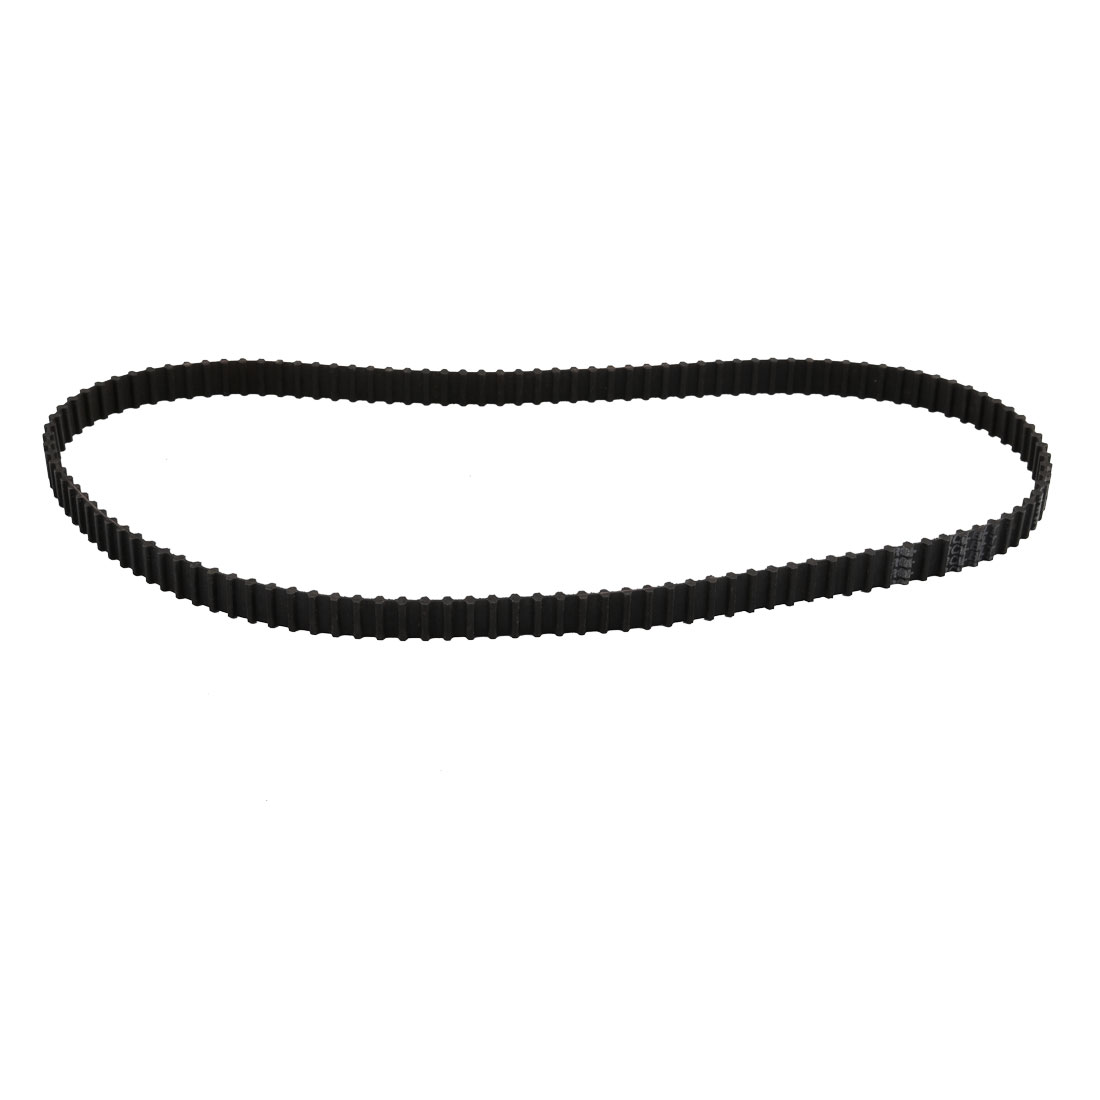 250DXL 125 Teeth 10mm Width 5.08mm Pitch Stepper Motor Rubber Timing Belt Black